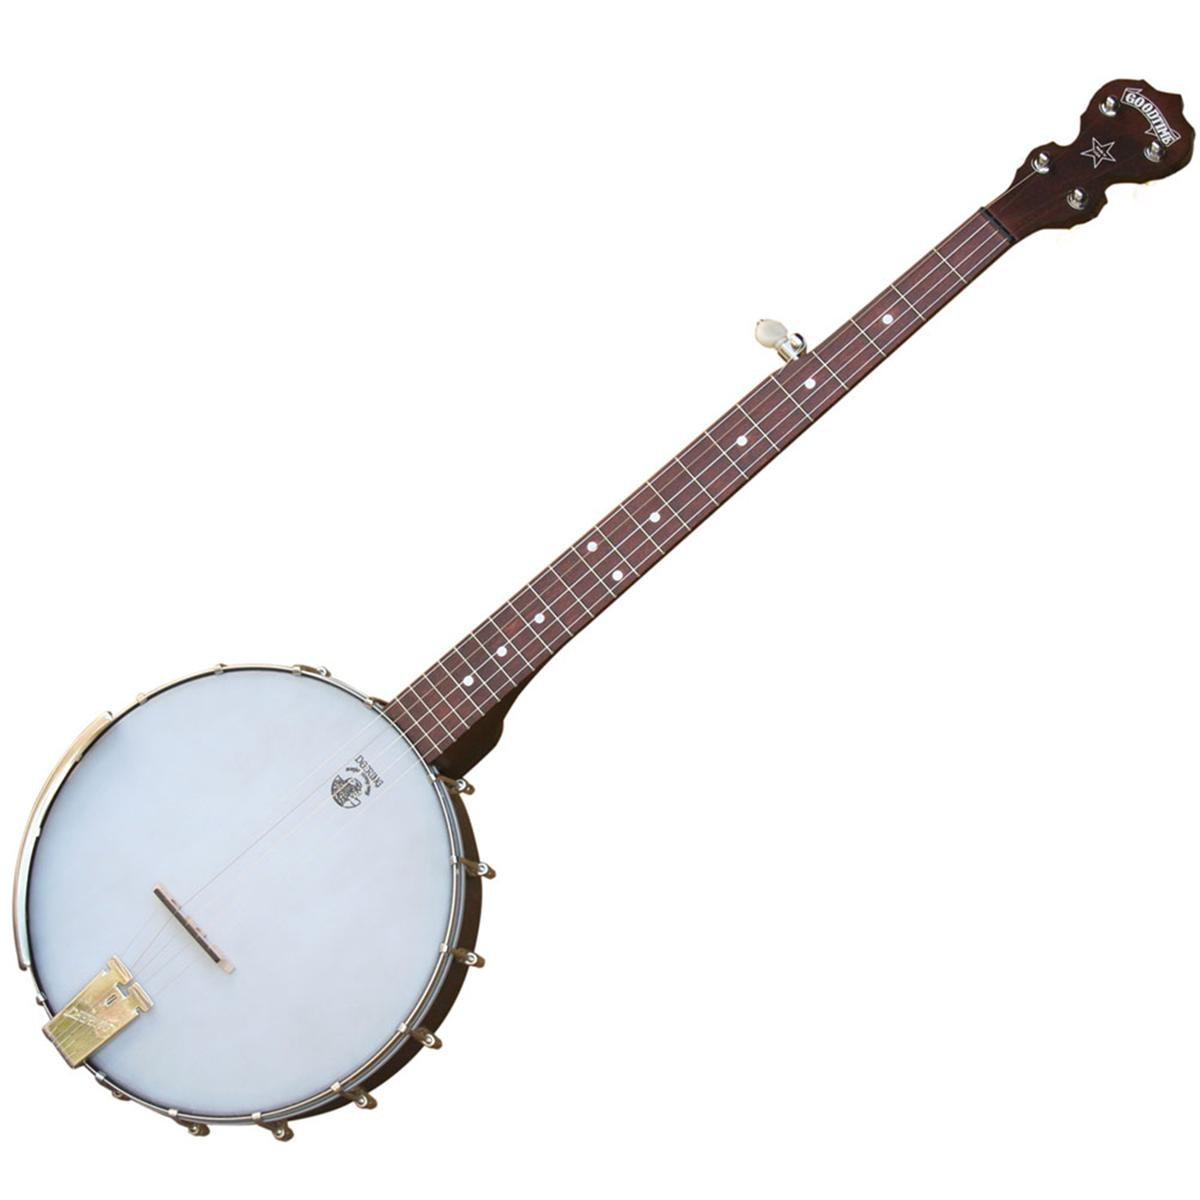 Products27227 1200x1200 268936 - Deering Classic Goodtime Special Open Back Banjo